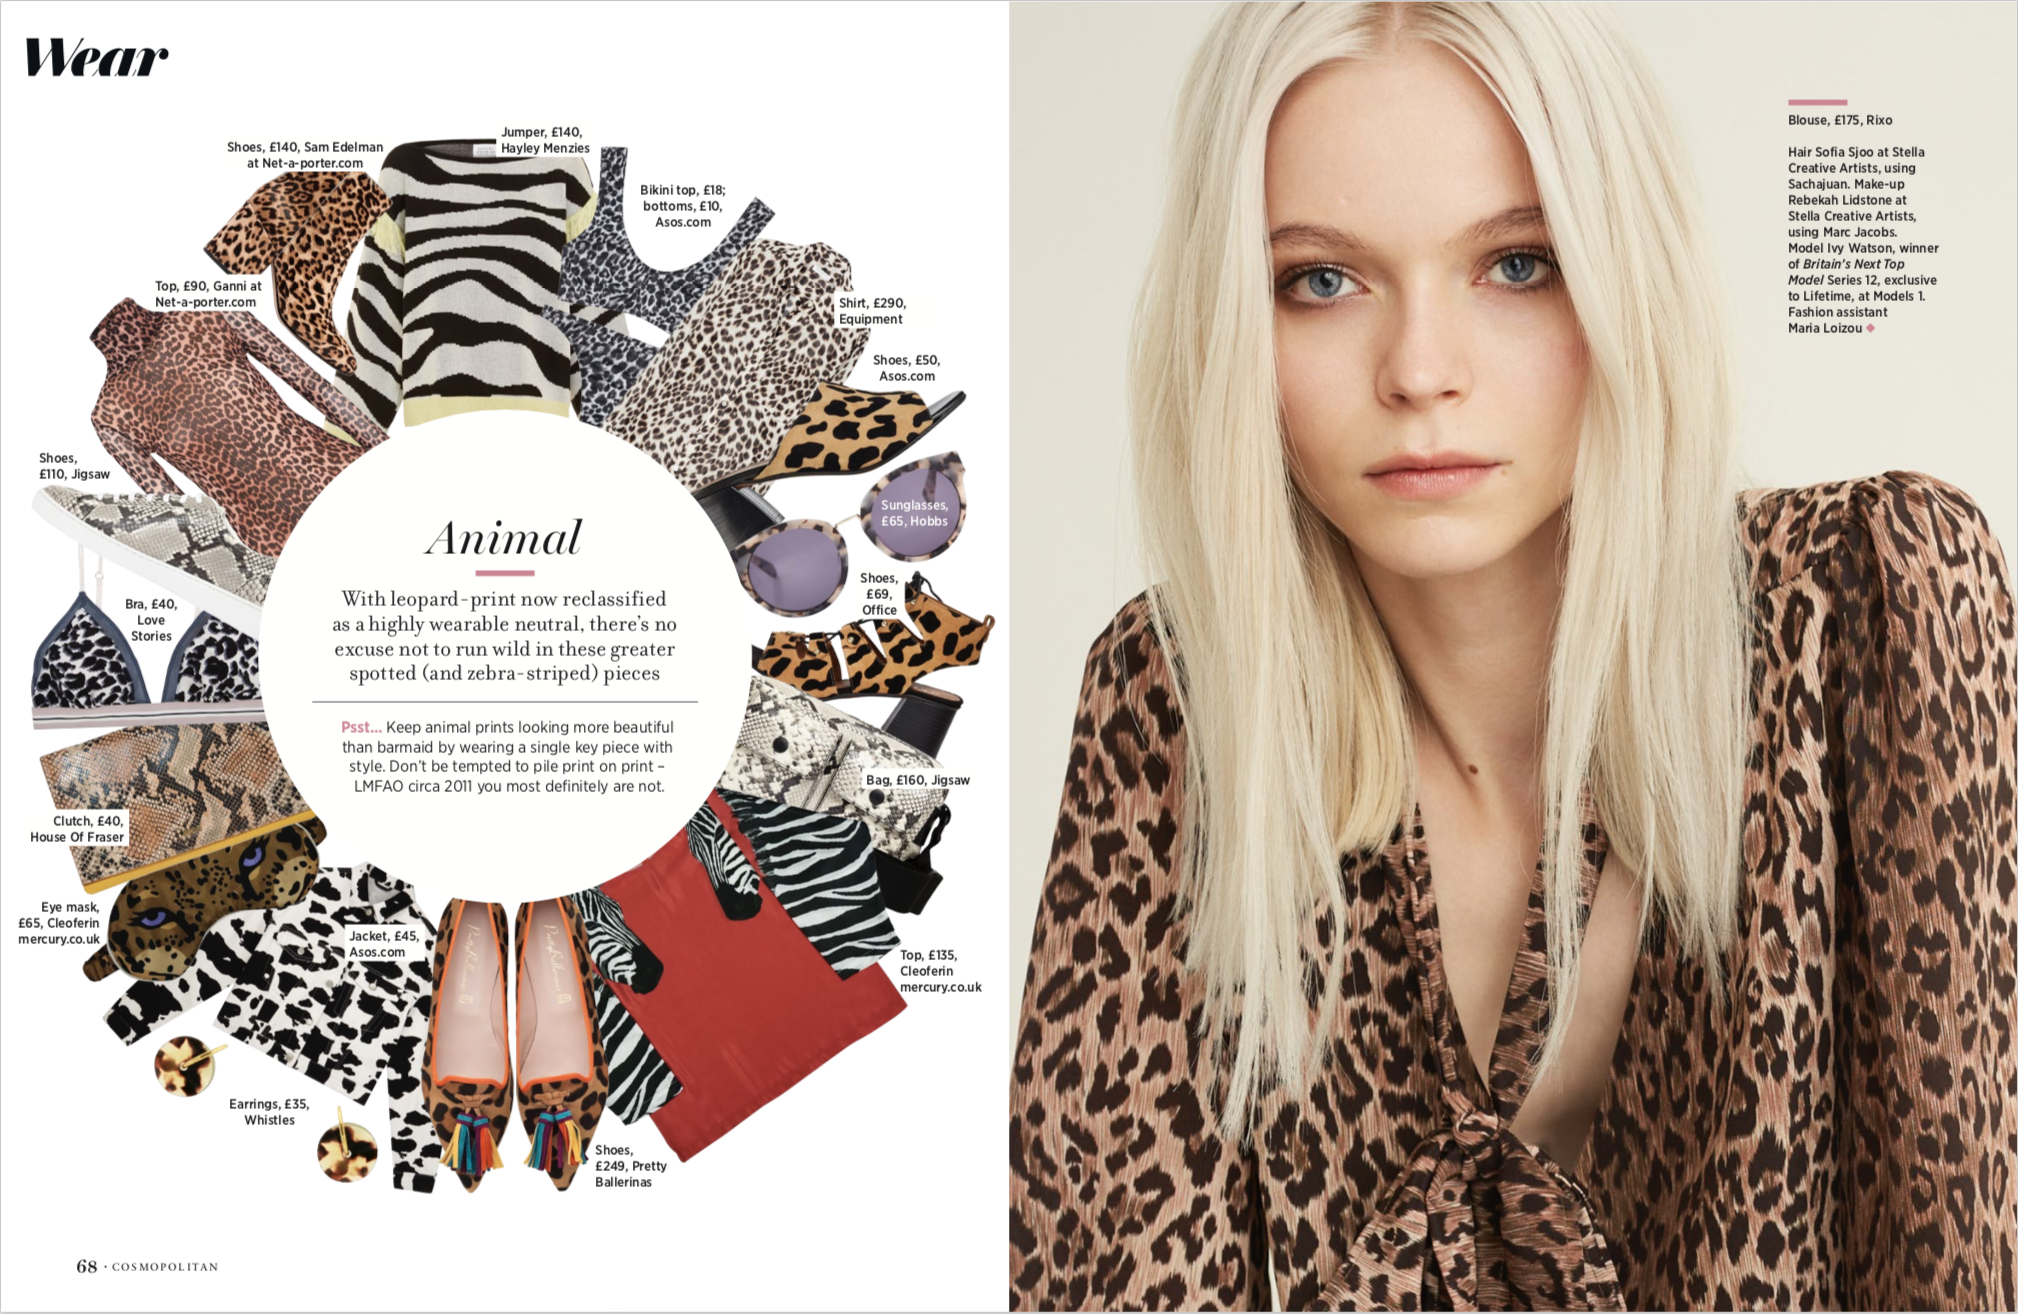 Jaguar Print Eye Mask as seen in Cosmopolitan Magazine - Cleo Ferin Mercury - Ivy Watson - Animal Print.png